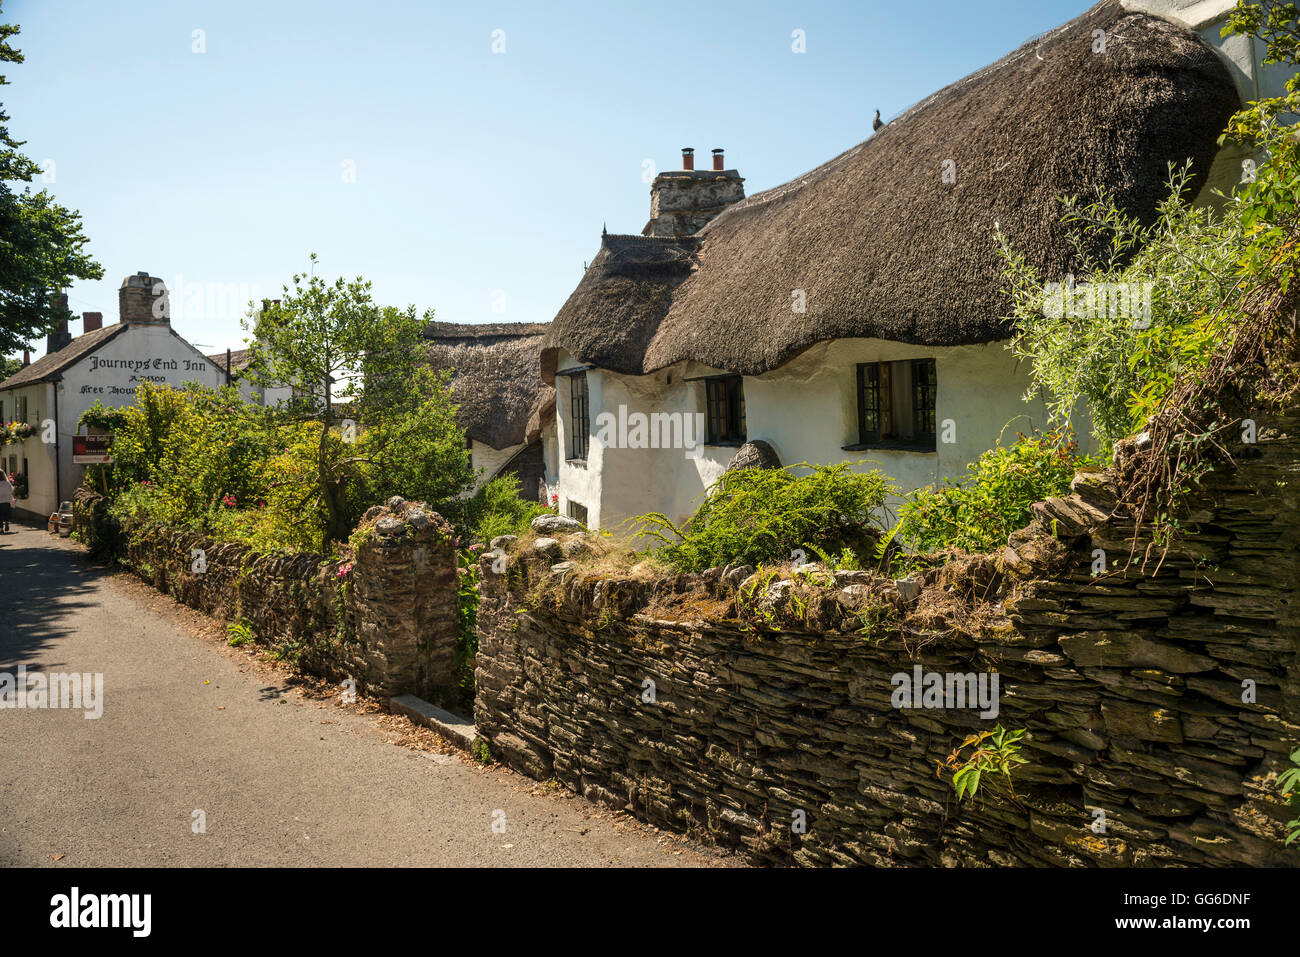 Ancient thatched cottage and The Journey's End Inn in the village of Ringmore in The South Hams, Devon, UK - Stock Image